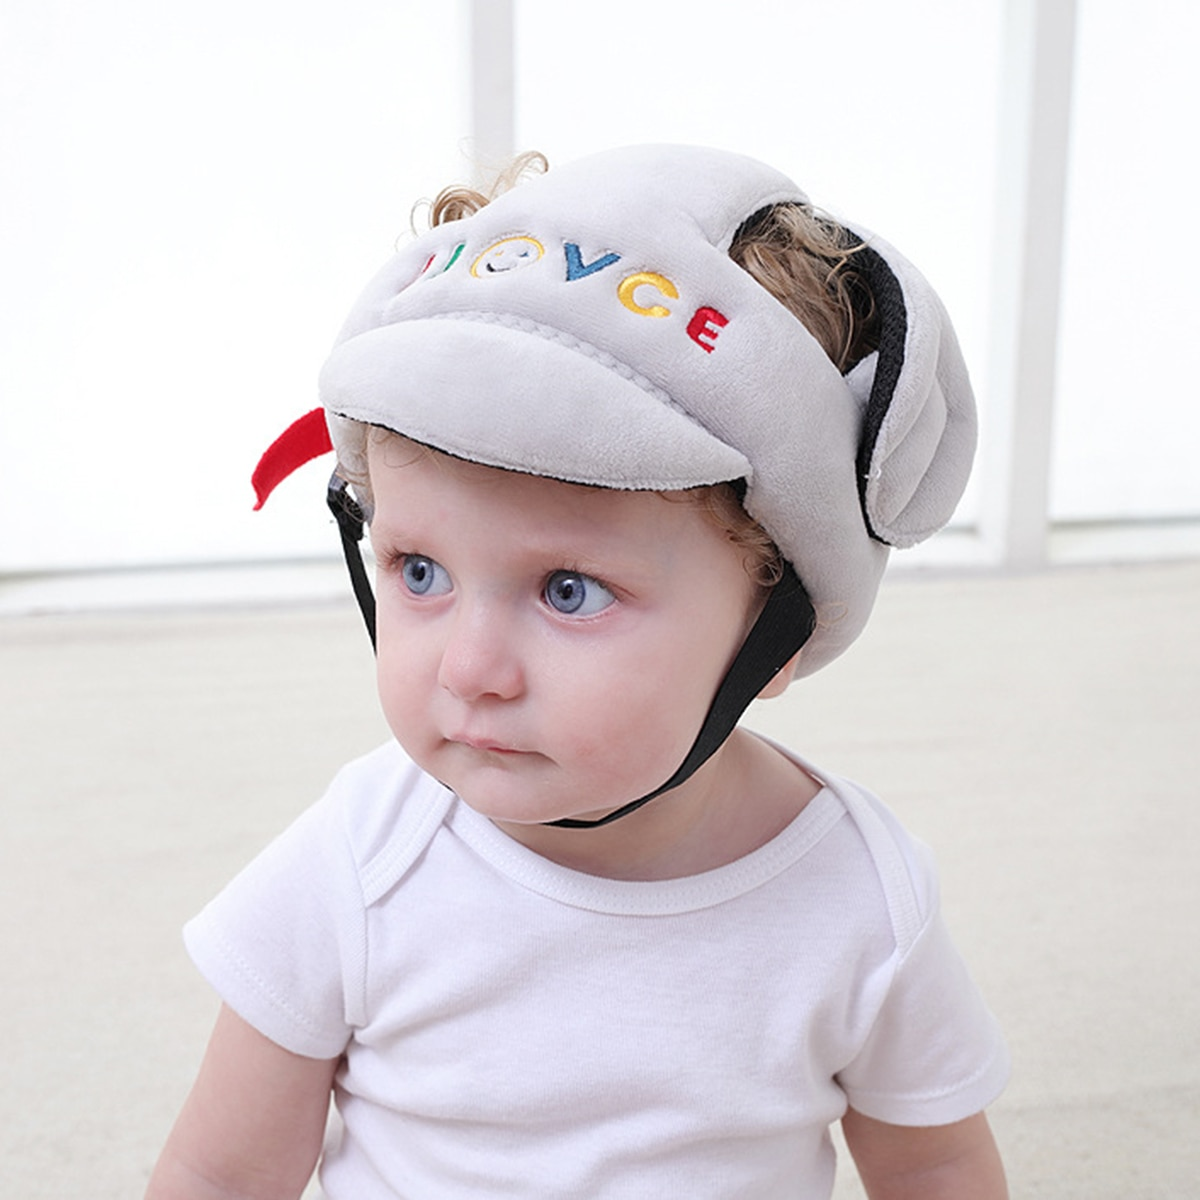 Free ship Adjustable Baby Toddler Safety Helmet Protective Harnesses Hat Cap Adjustable Head Guard Kids Head Protector 2 Color